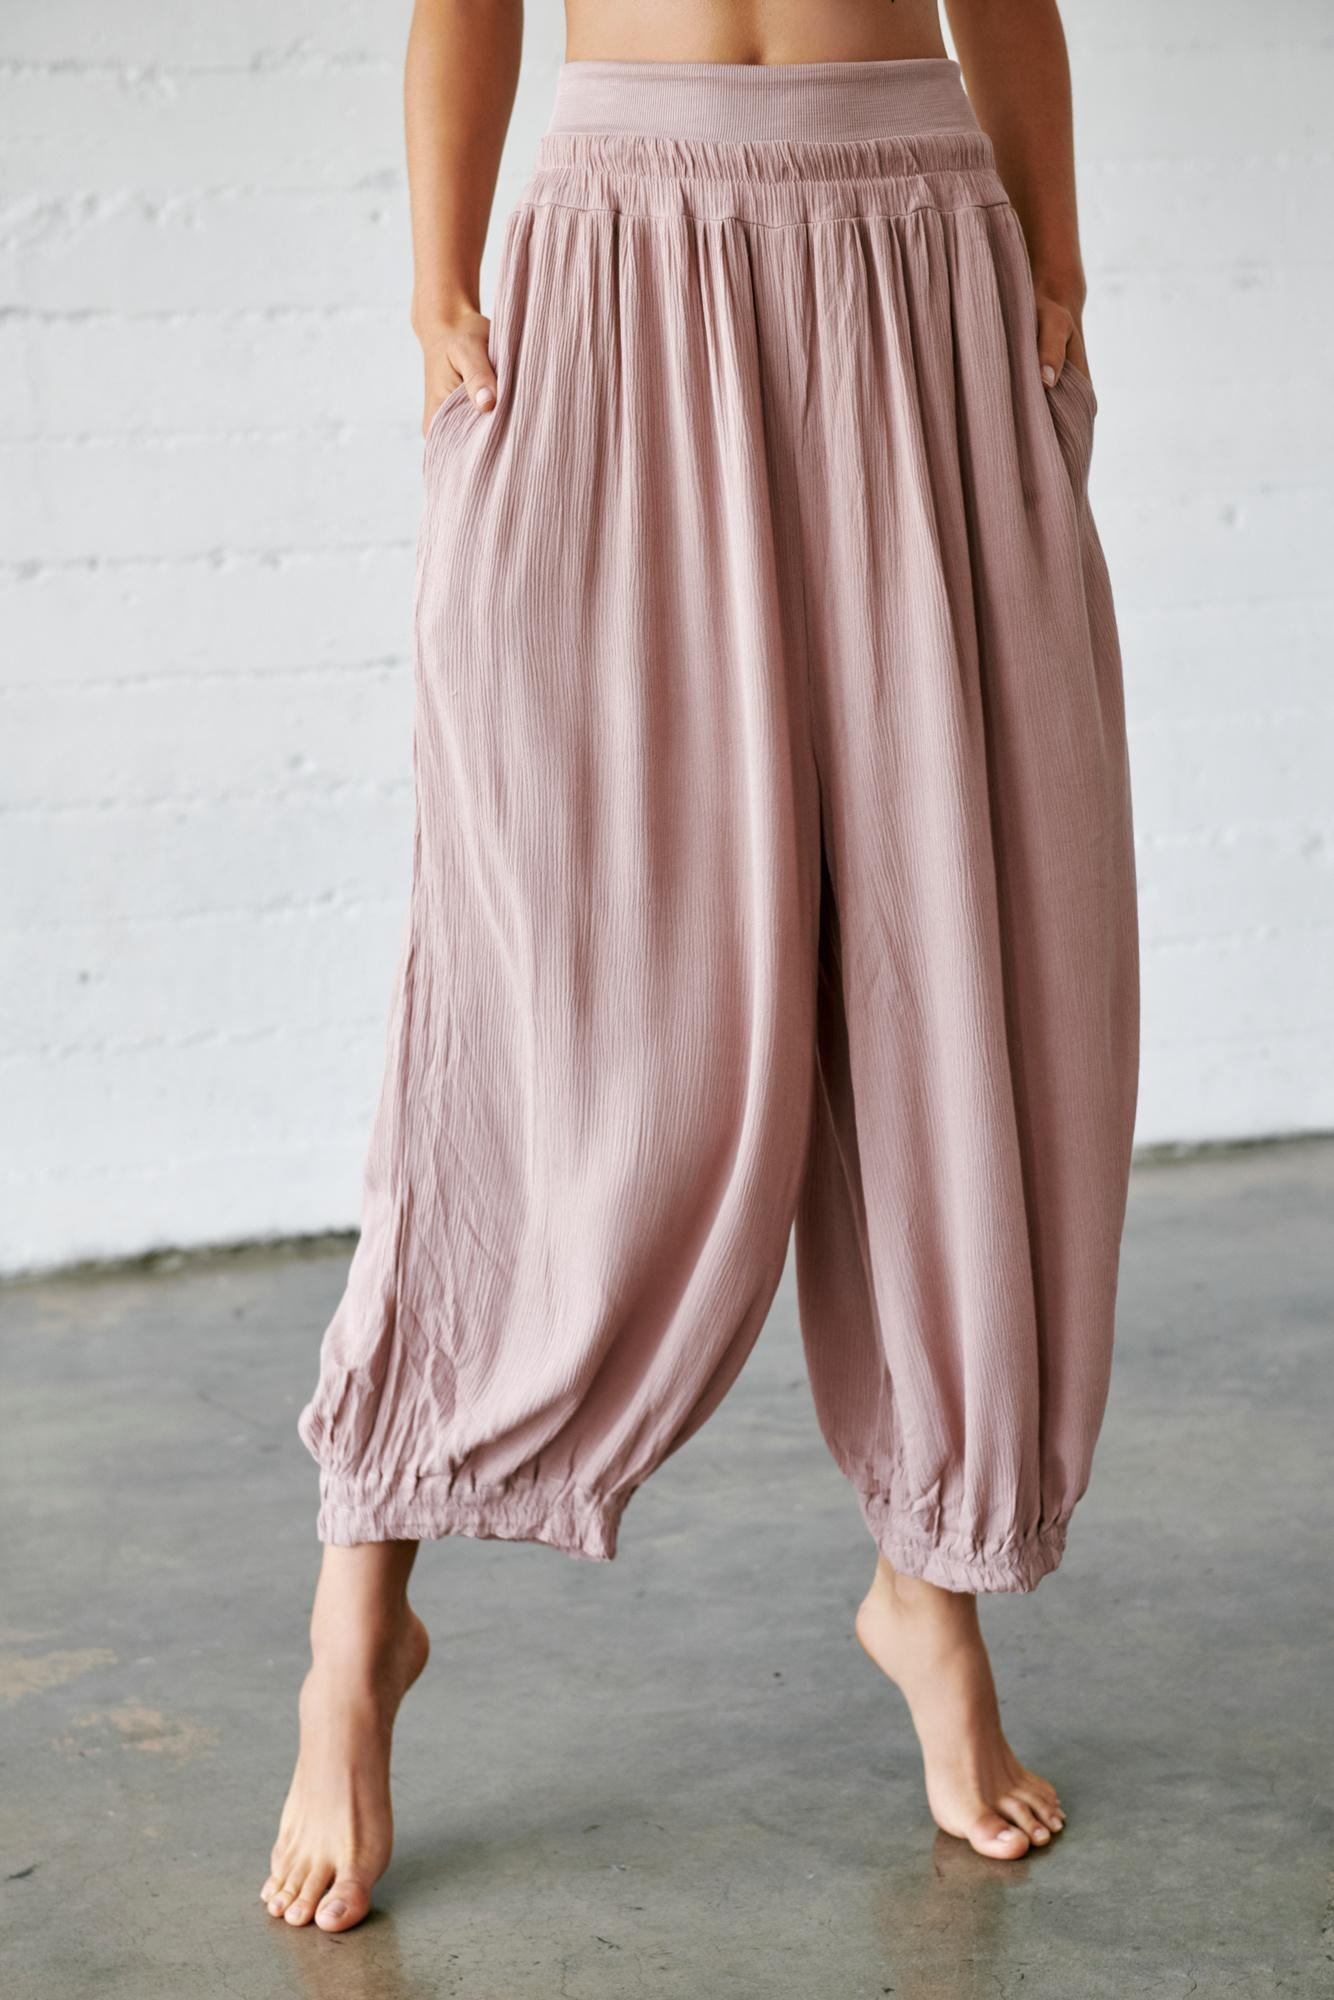 Free People. Women s Emery Pant By Fp Movement a080b07f7